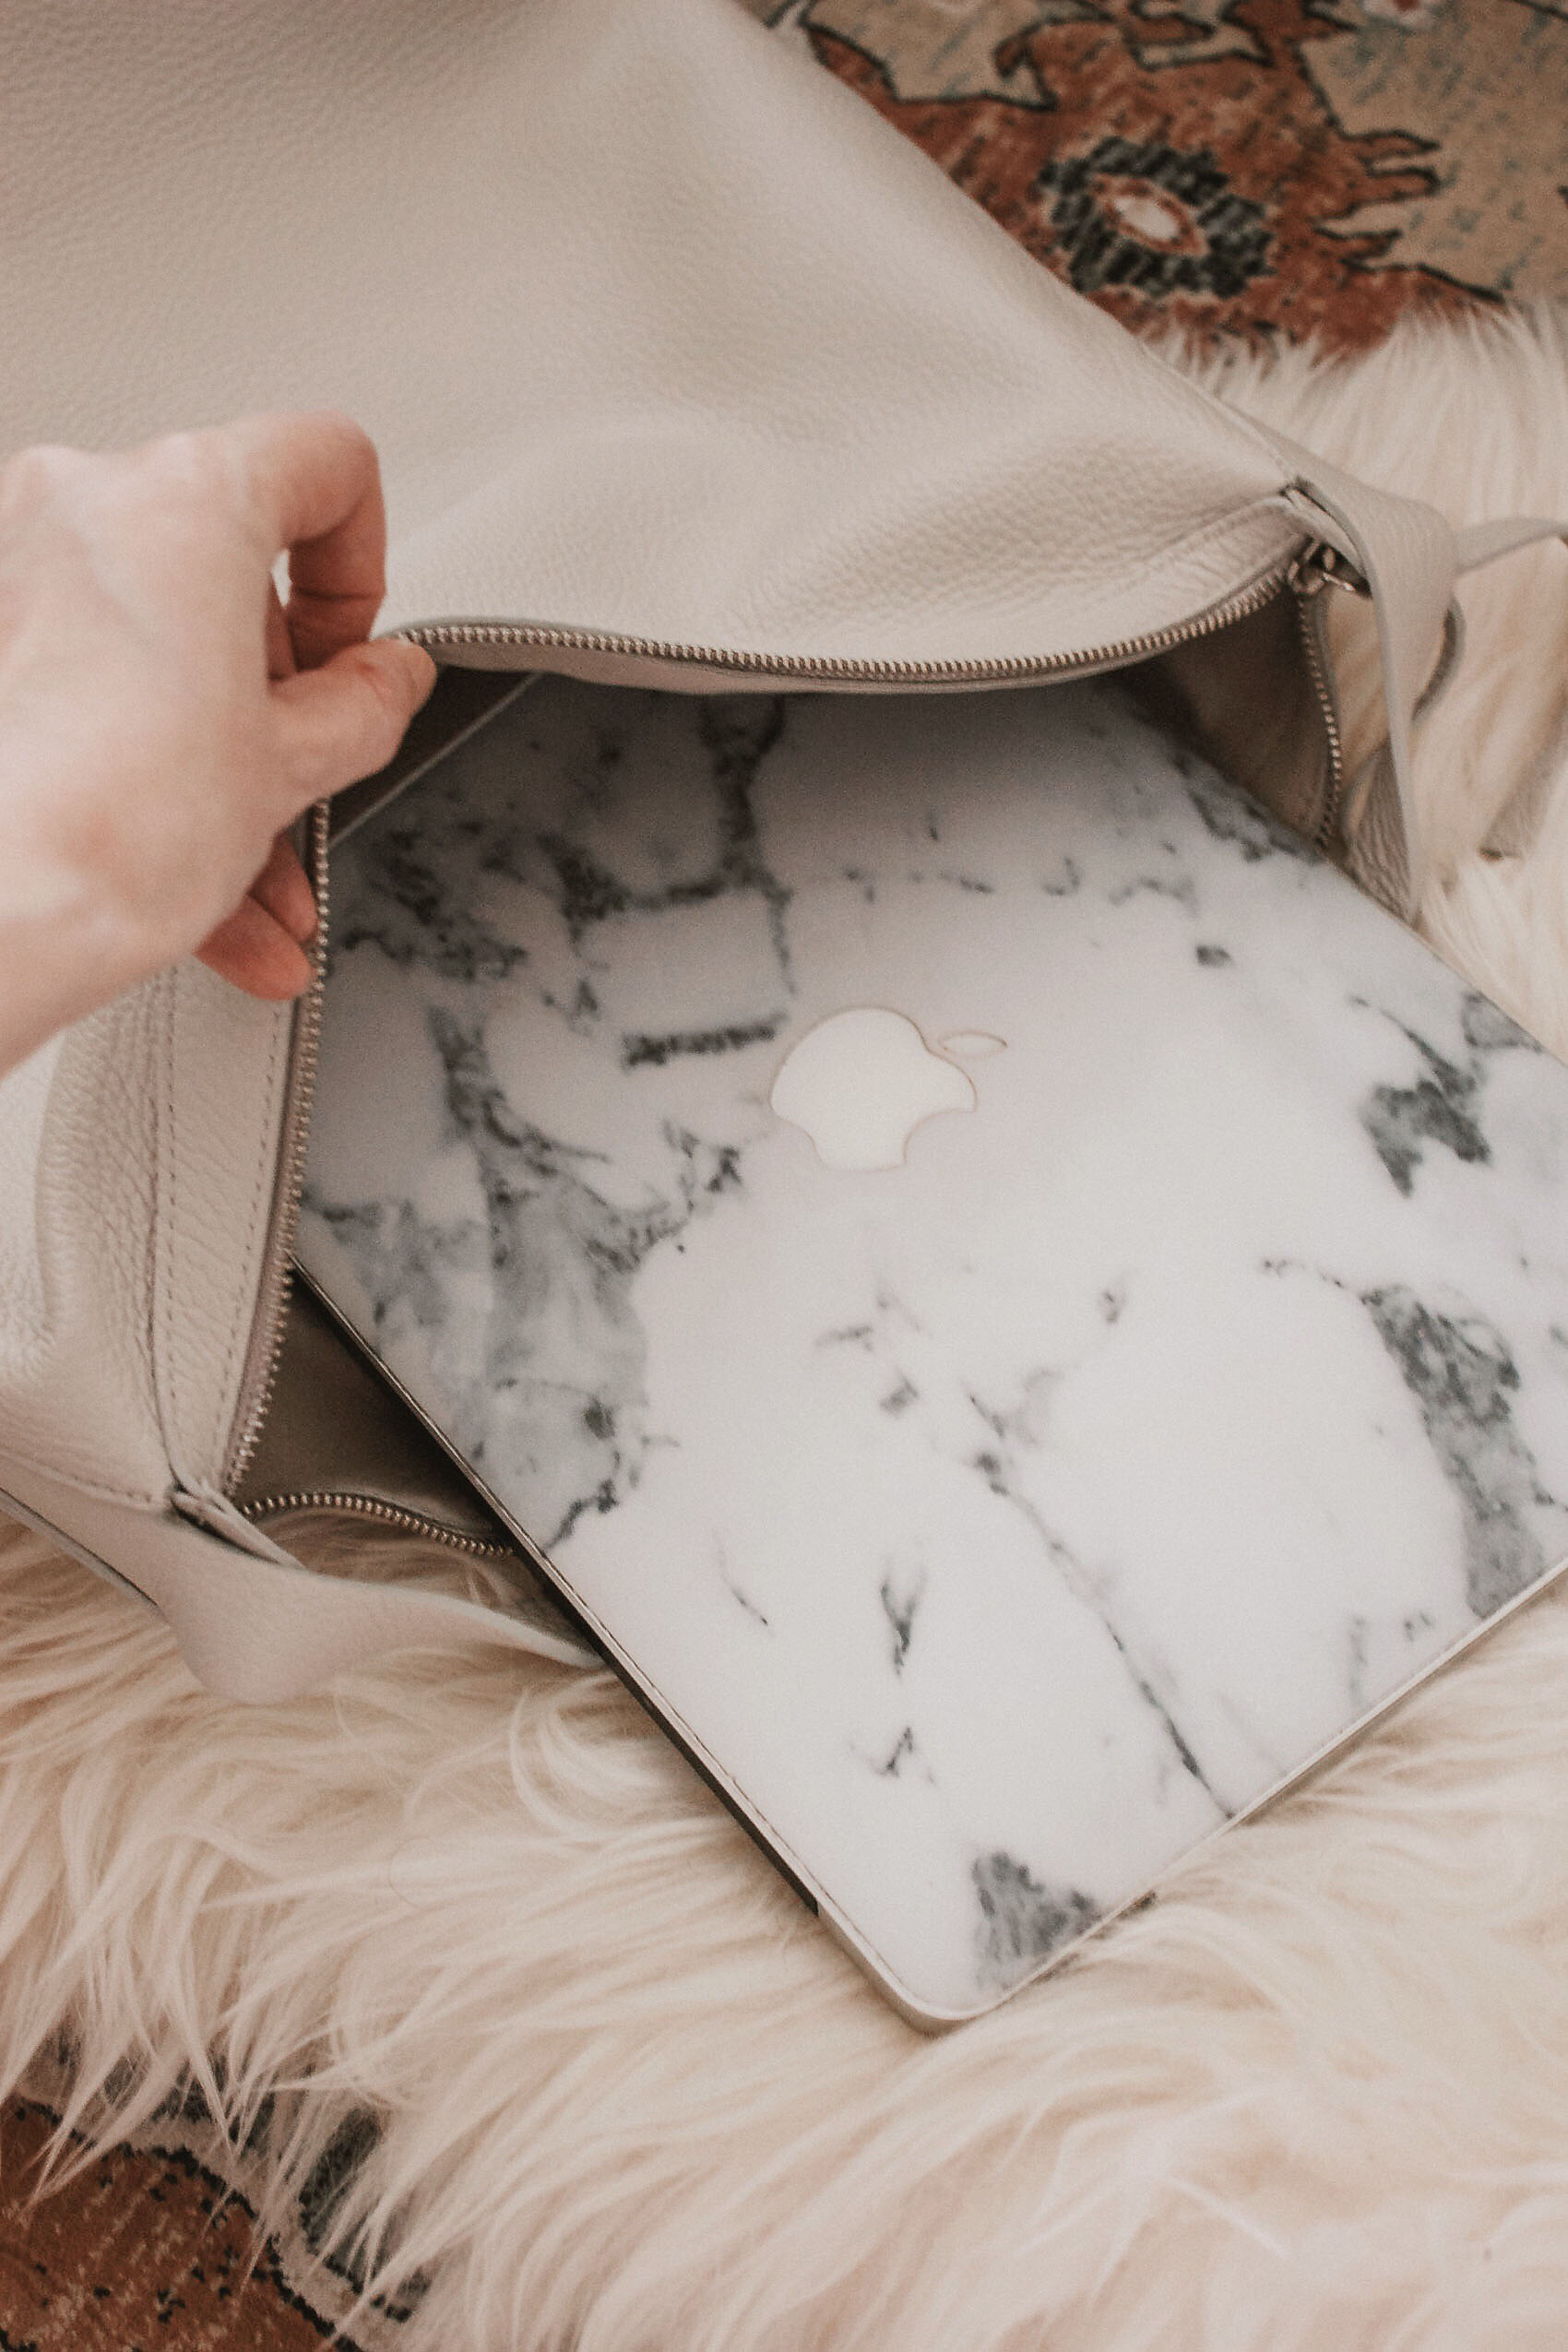 Everlane Leather Boss Bag Review with Laptop